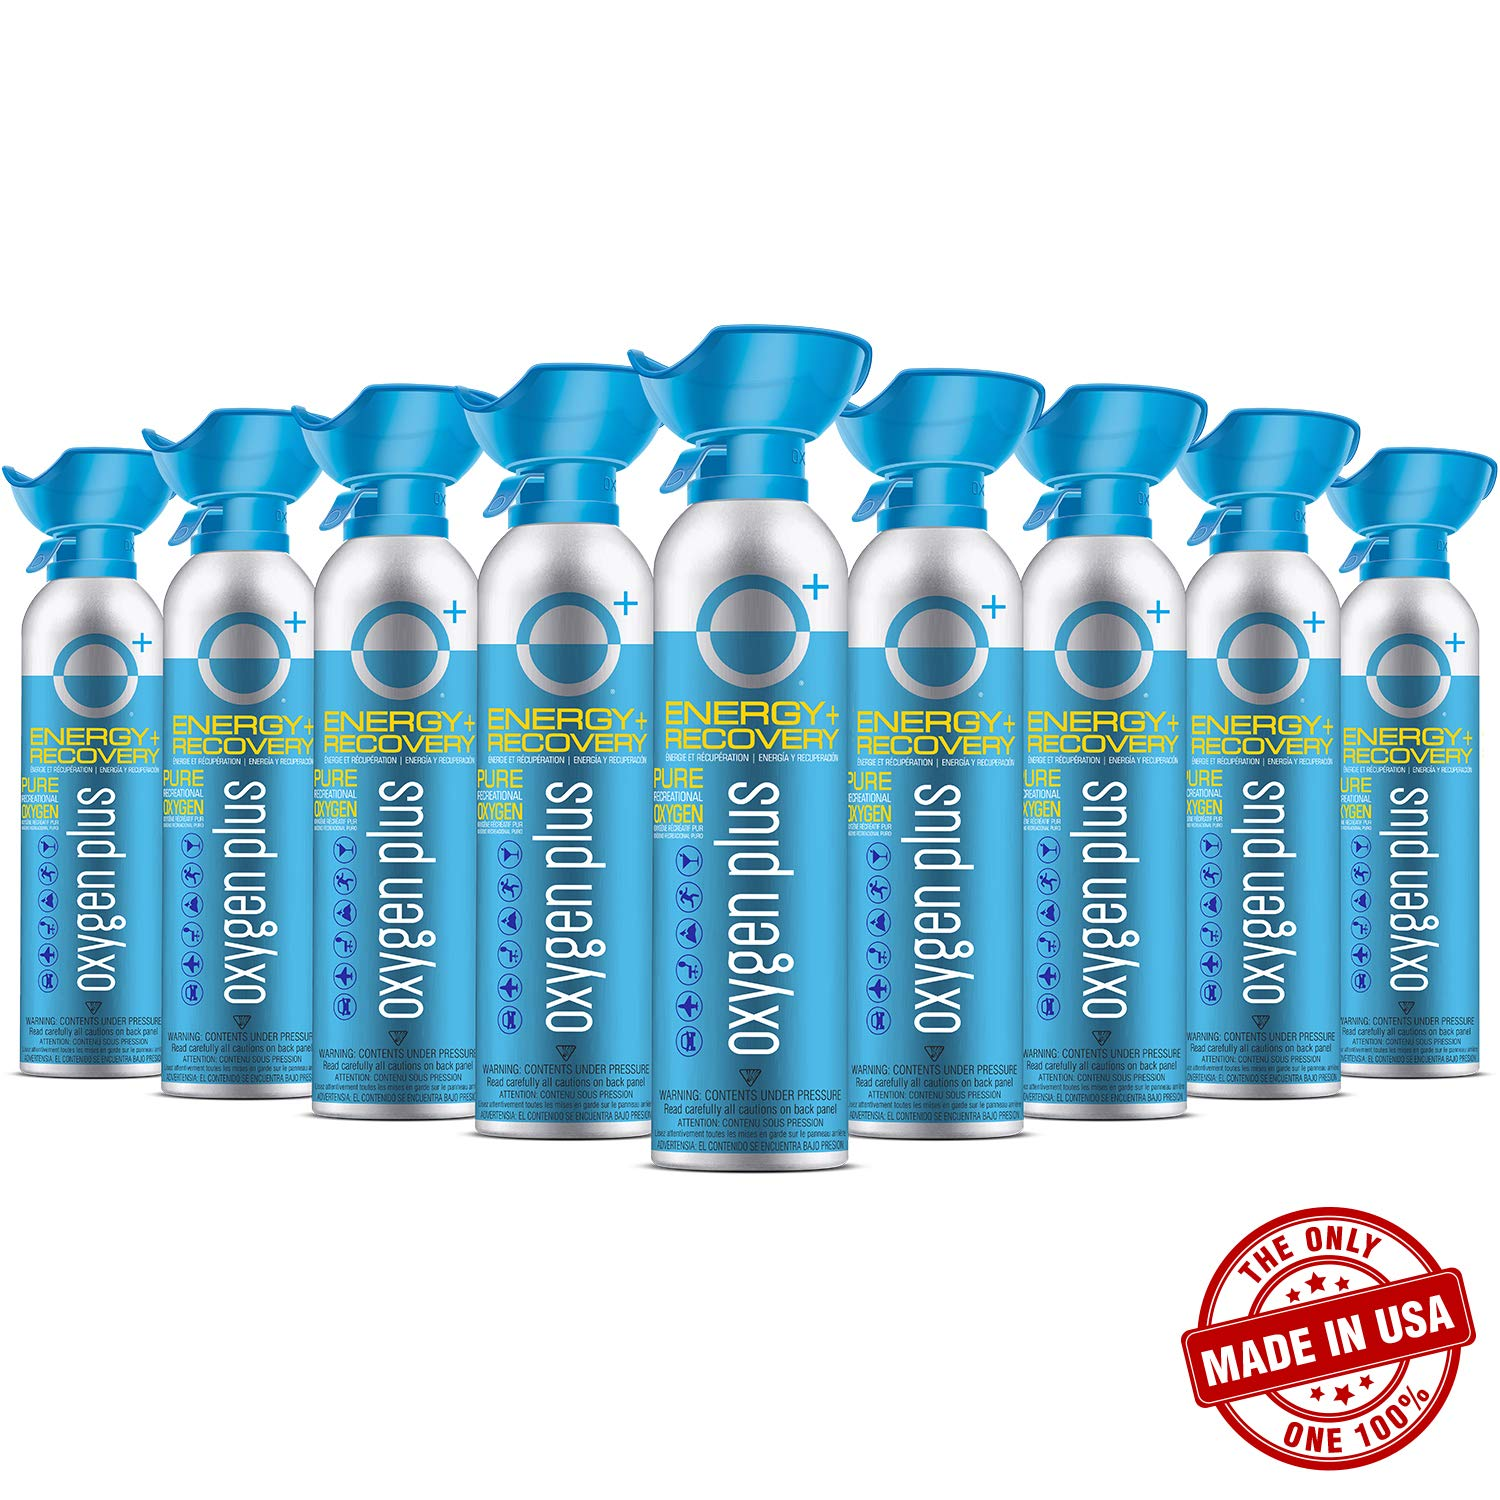 Oxygen Plus Oxygen Cans O+ Biggi, Boost Oxygen Levels with Portable & Concentrated Recreational Oxygen for Altitude Performance & Energy, Made in The USA, 7 Litre Canisters (9-Pack)